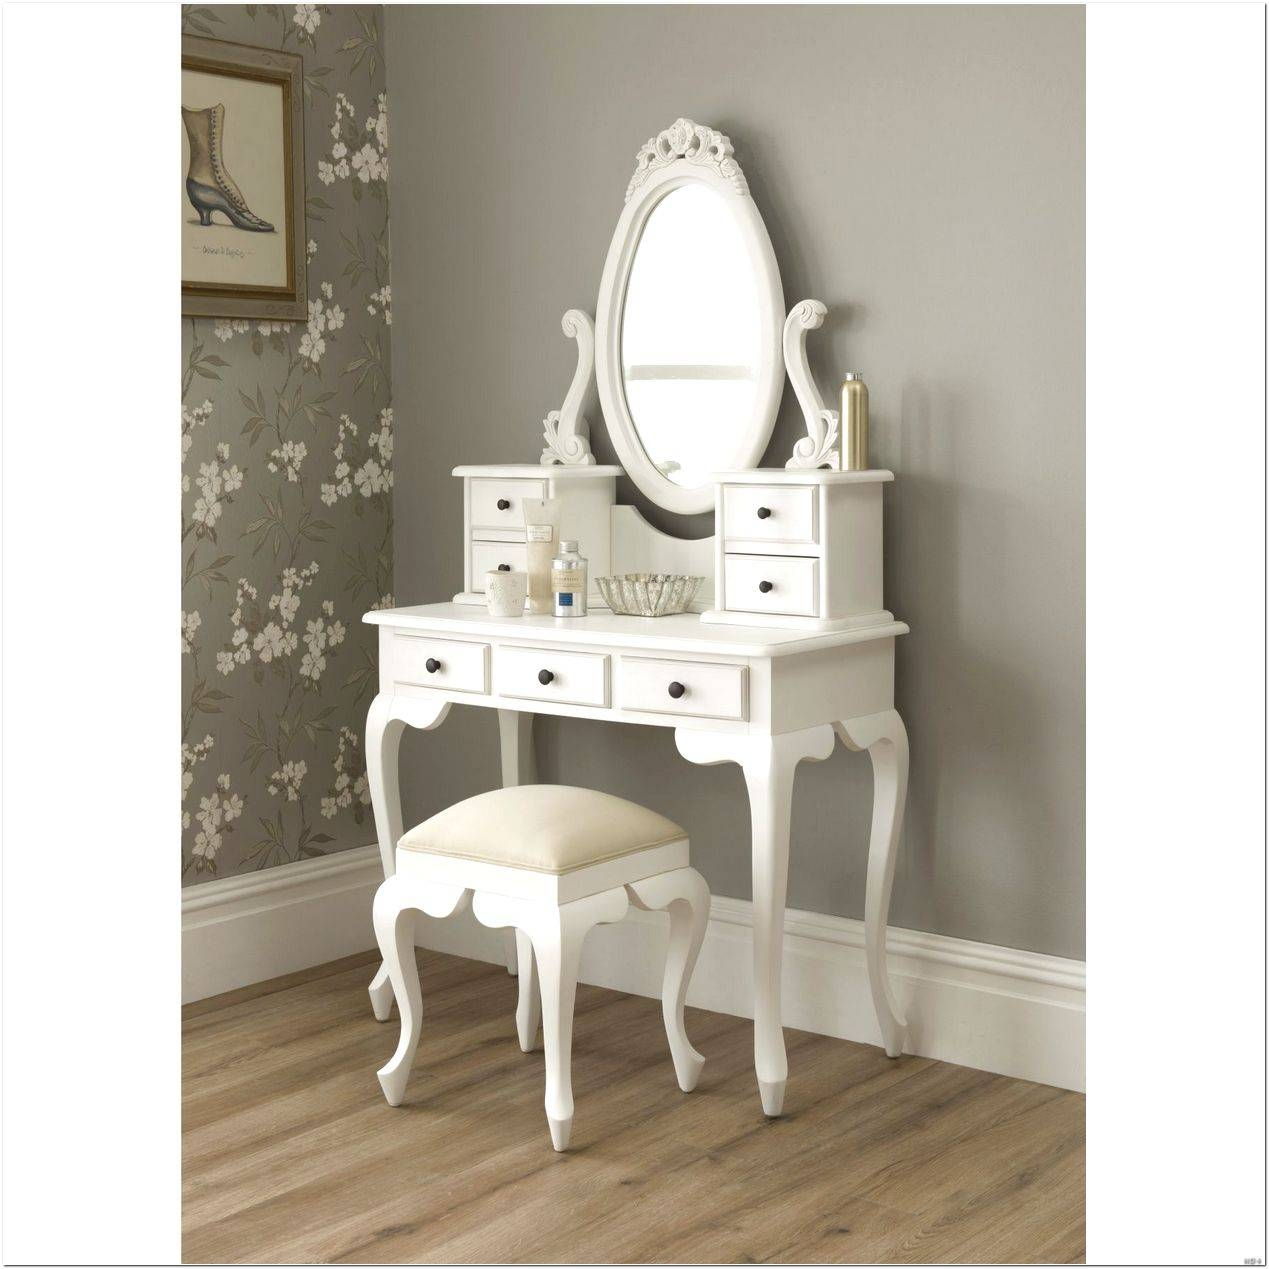 Venetian Dressing Table Mirrors Design Ideas - Interior Design For regarding Venetian Dressing Table Mirrors (Image 12 of 15)